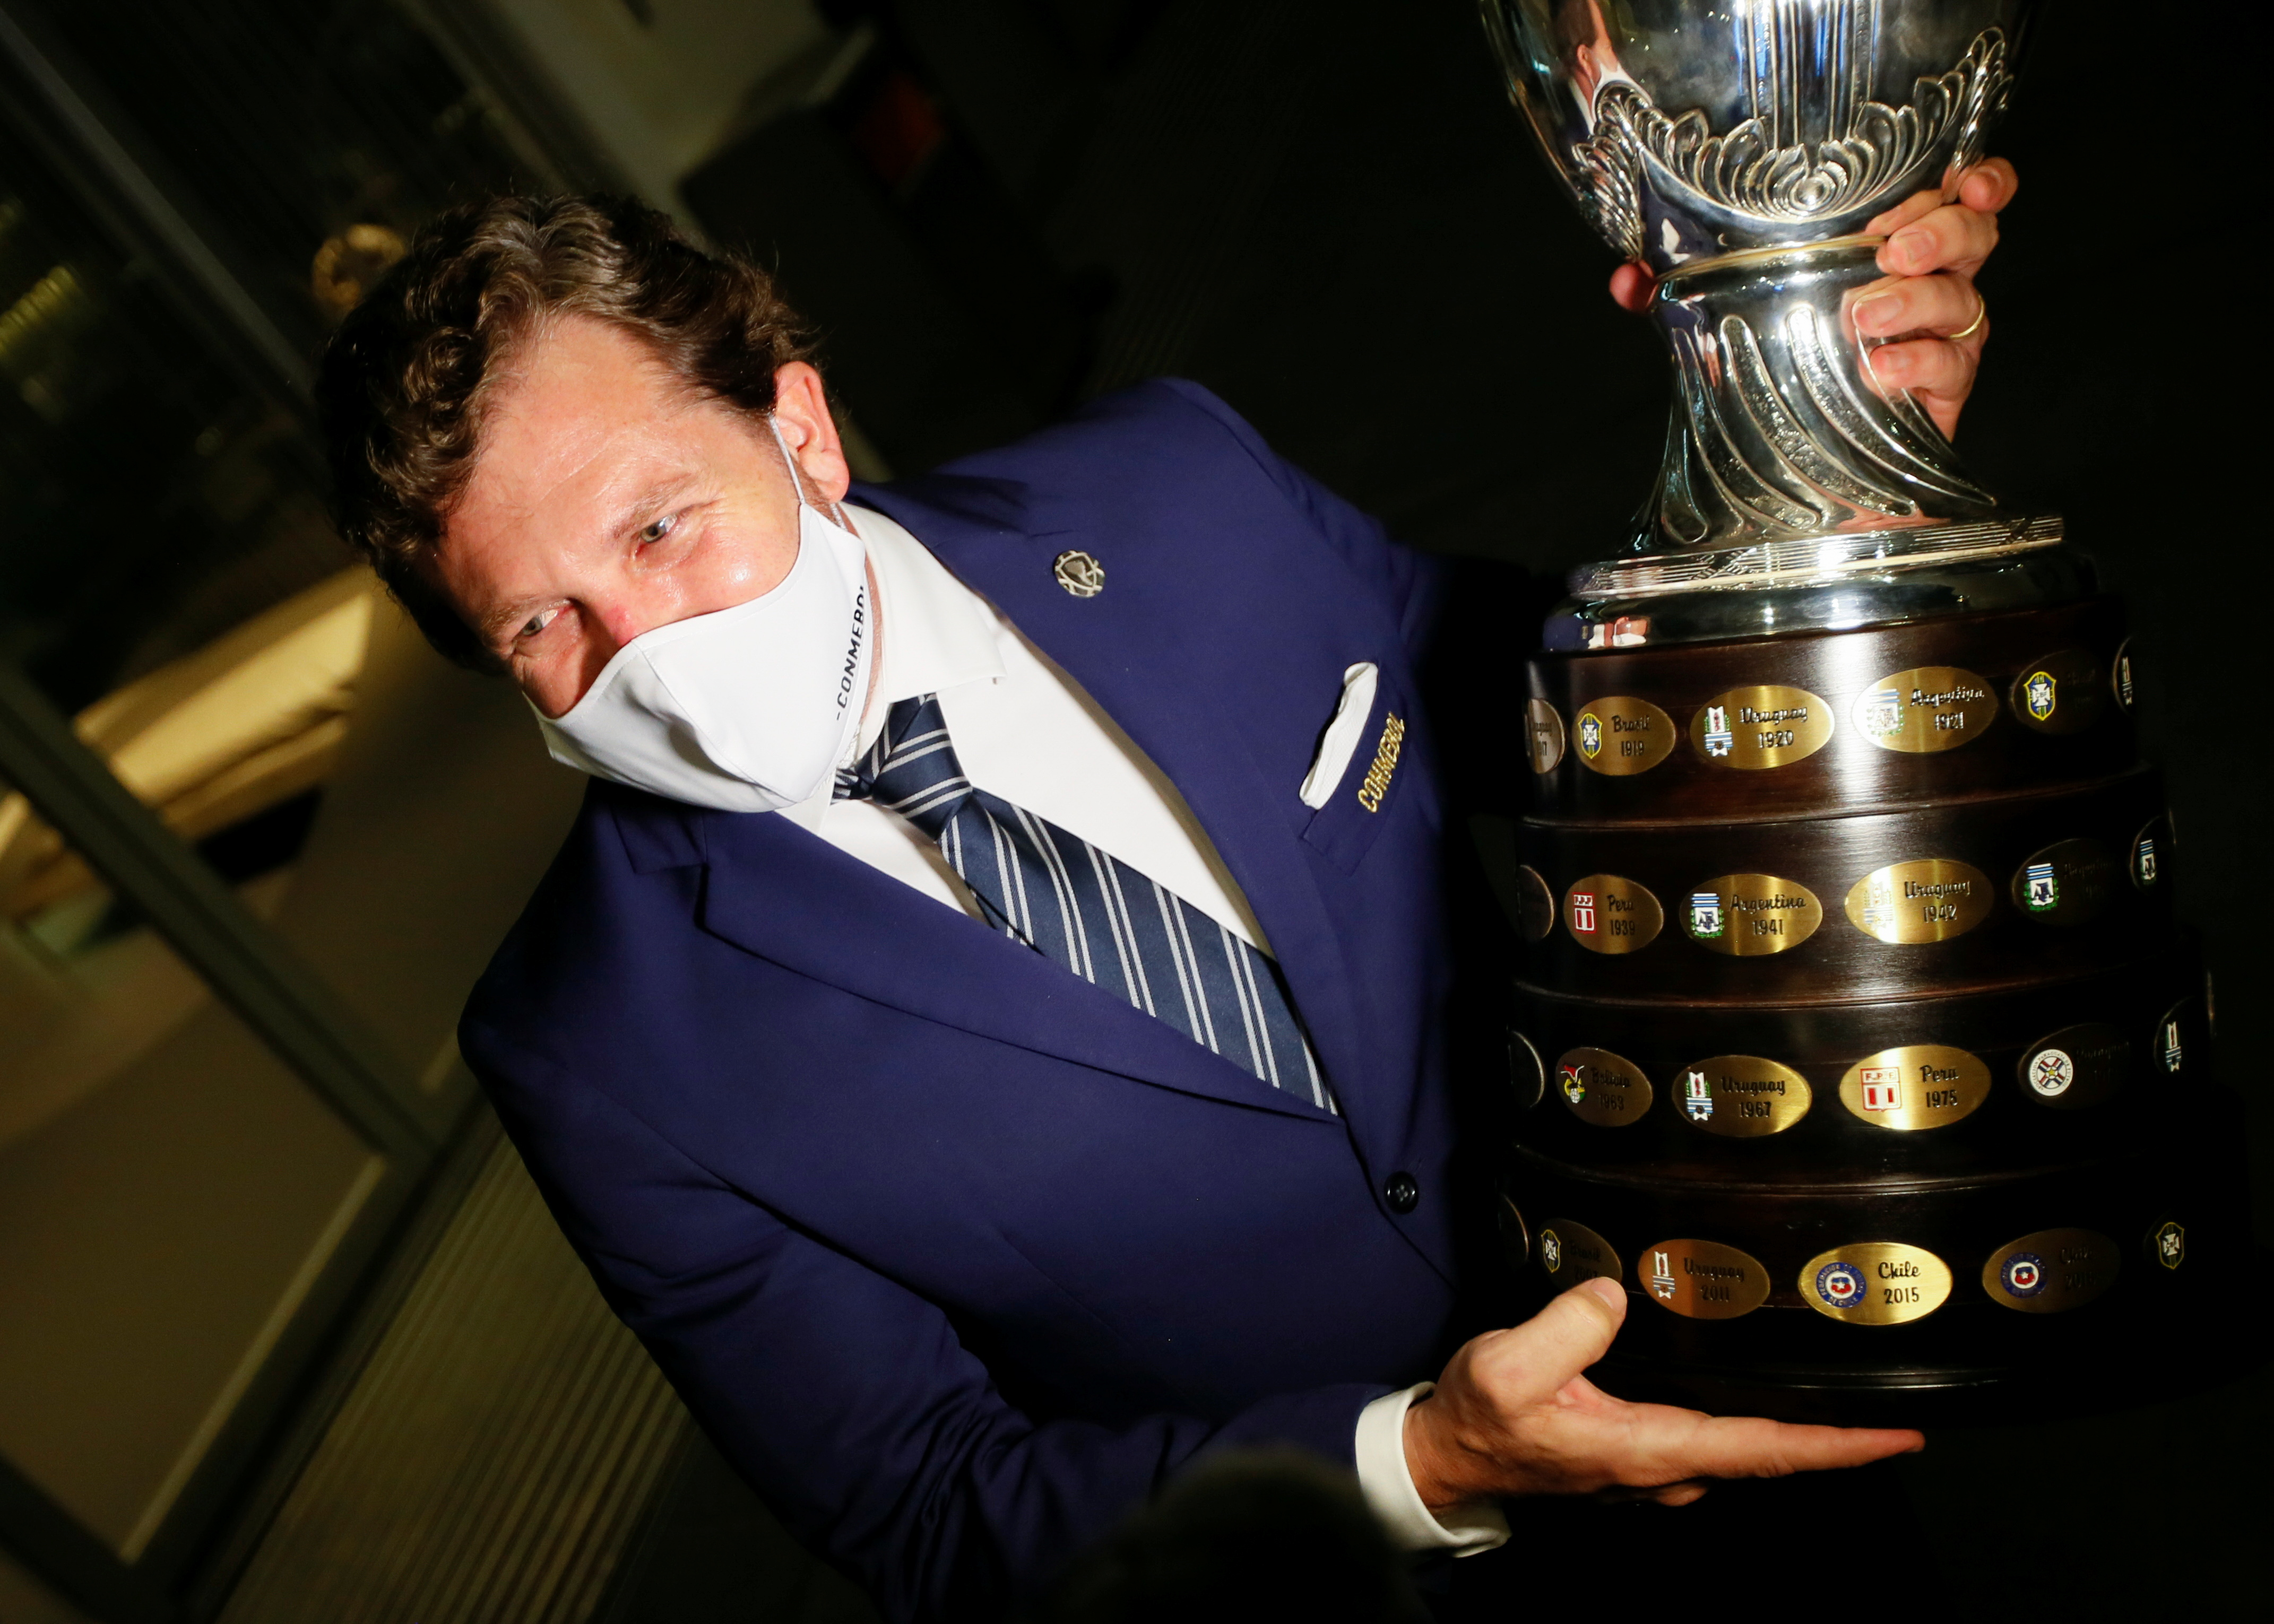 Alejandro Dominguez, president of CONMEBOL, holds the Copa America trophy after he gives a news conference after the arrival of the 50 thousand doses of the Chinese Sinovac coronavirus disease (COVID 19) vaccine that were donated by the Chinese government to the CONMEBOL in Carrasco Airport in Montevideo, Uruguay April 28, 2021. REUTERS/Mariana Greif